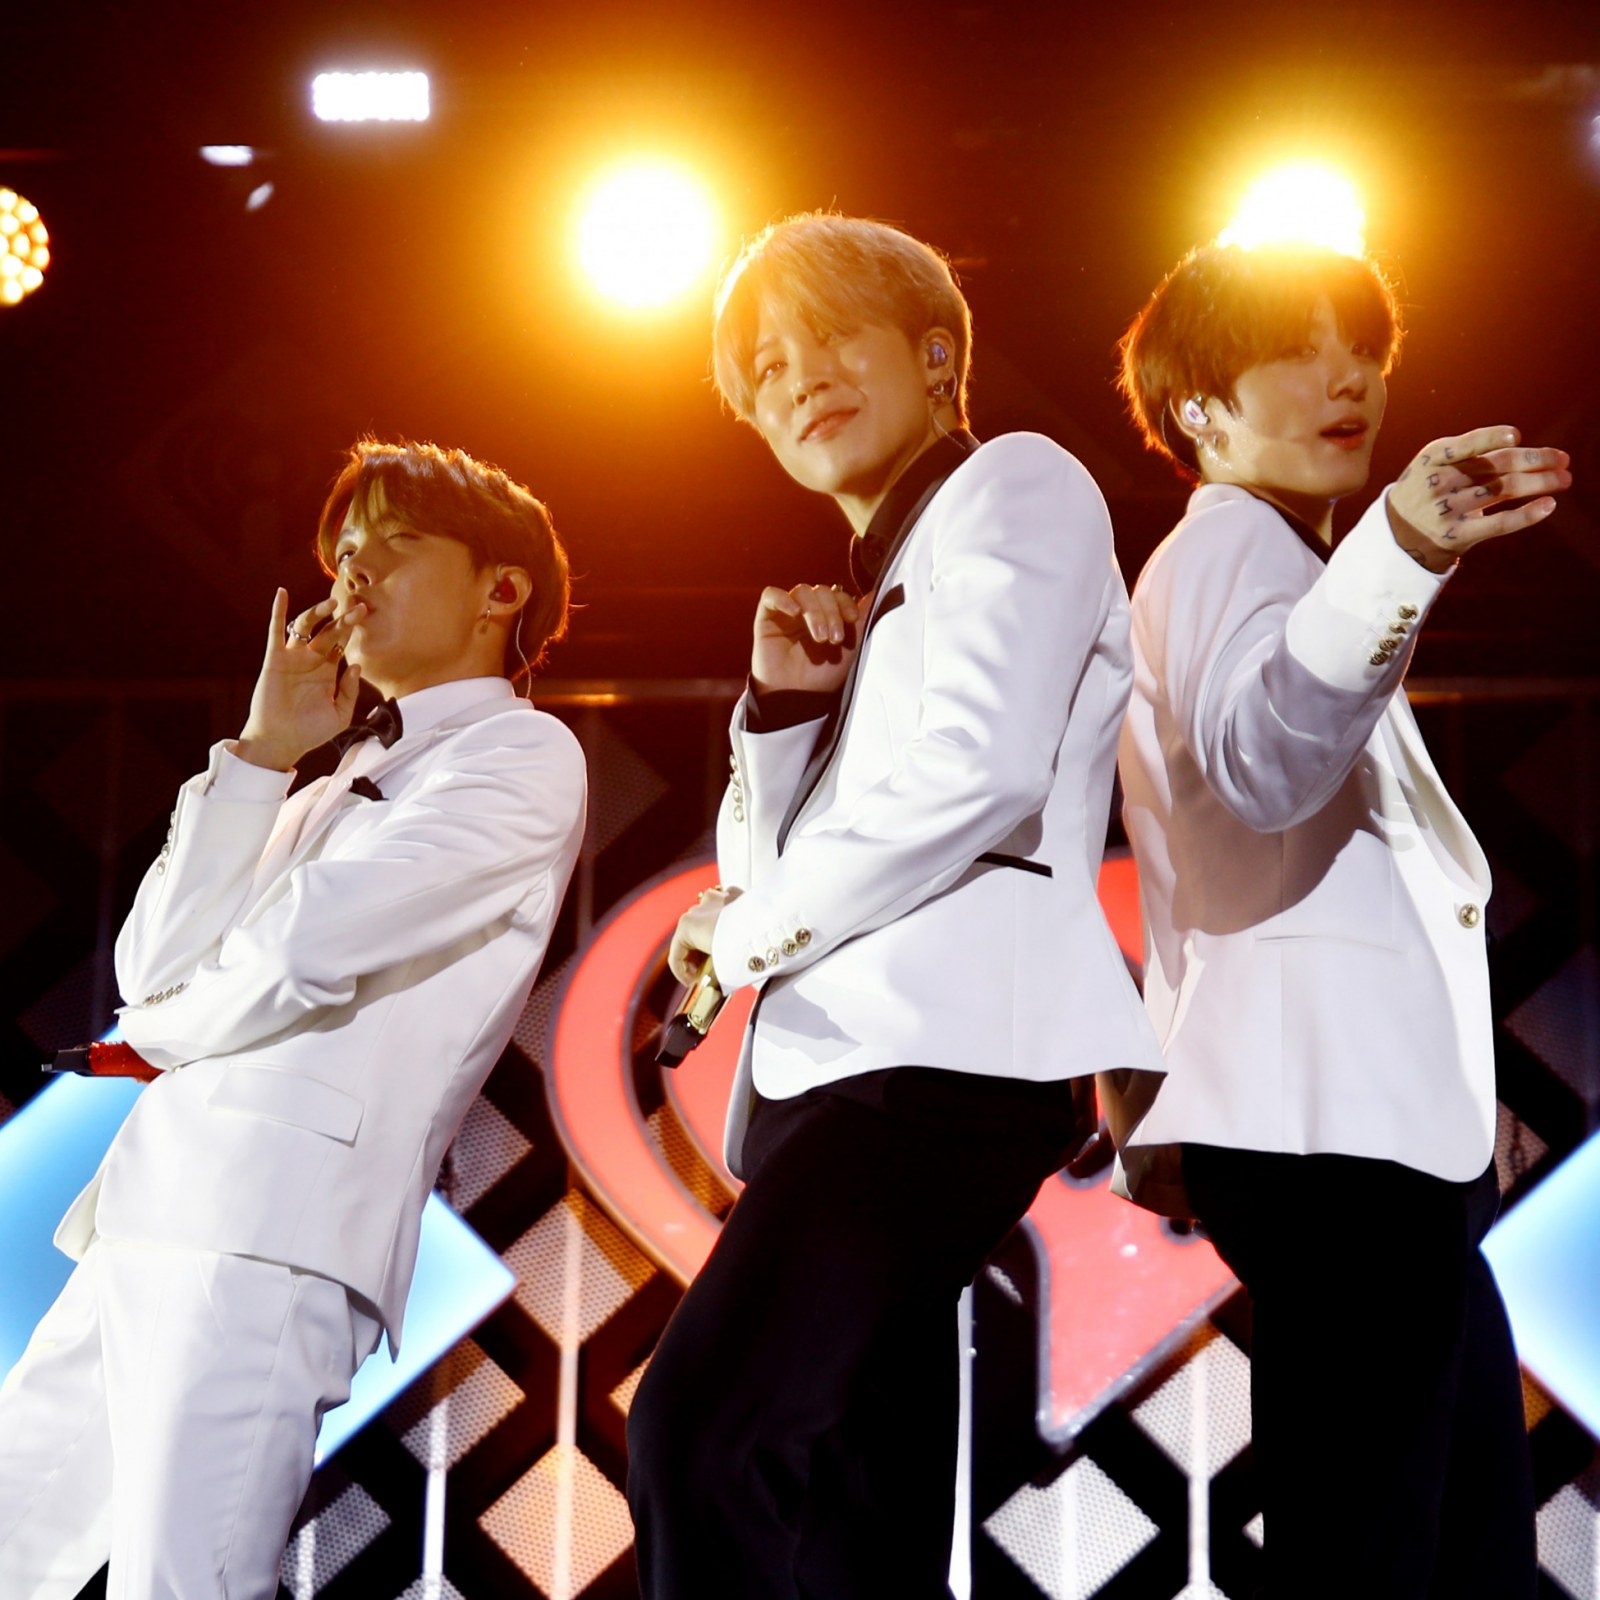 bts christmas performance has fans wishing holiday album